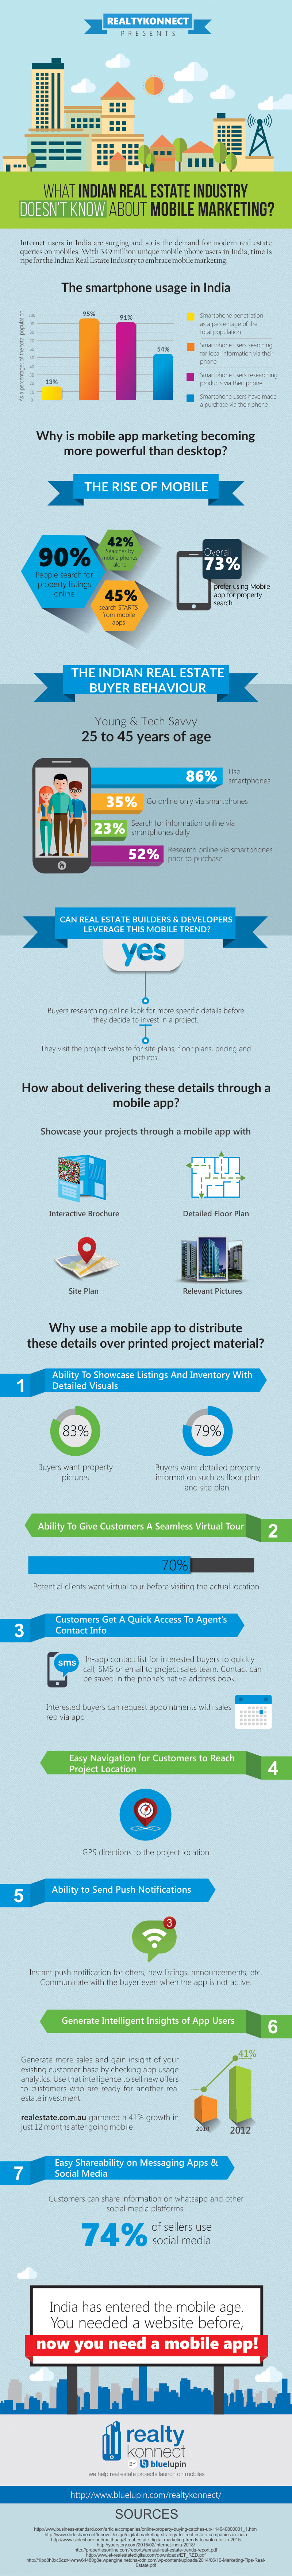 realtykonnect-infographic-mobile-marketing